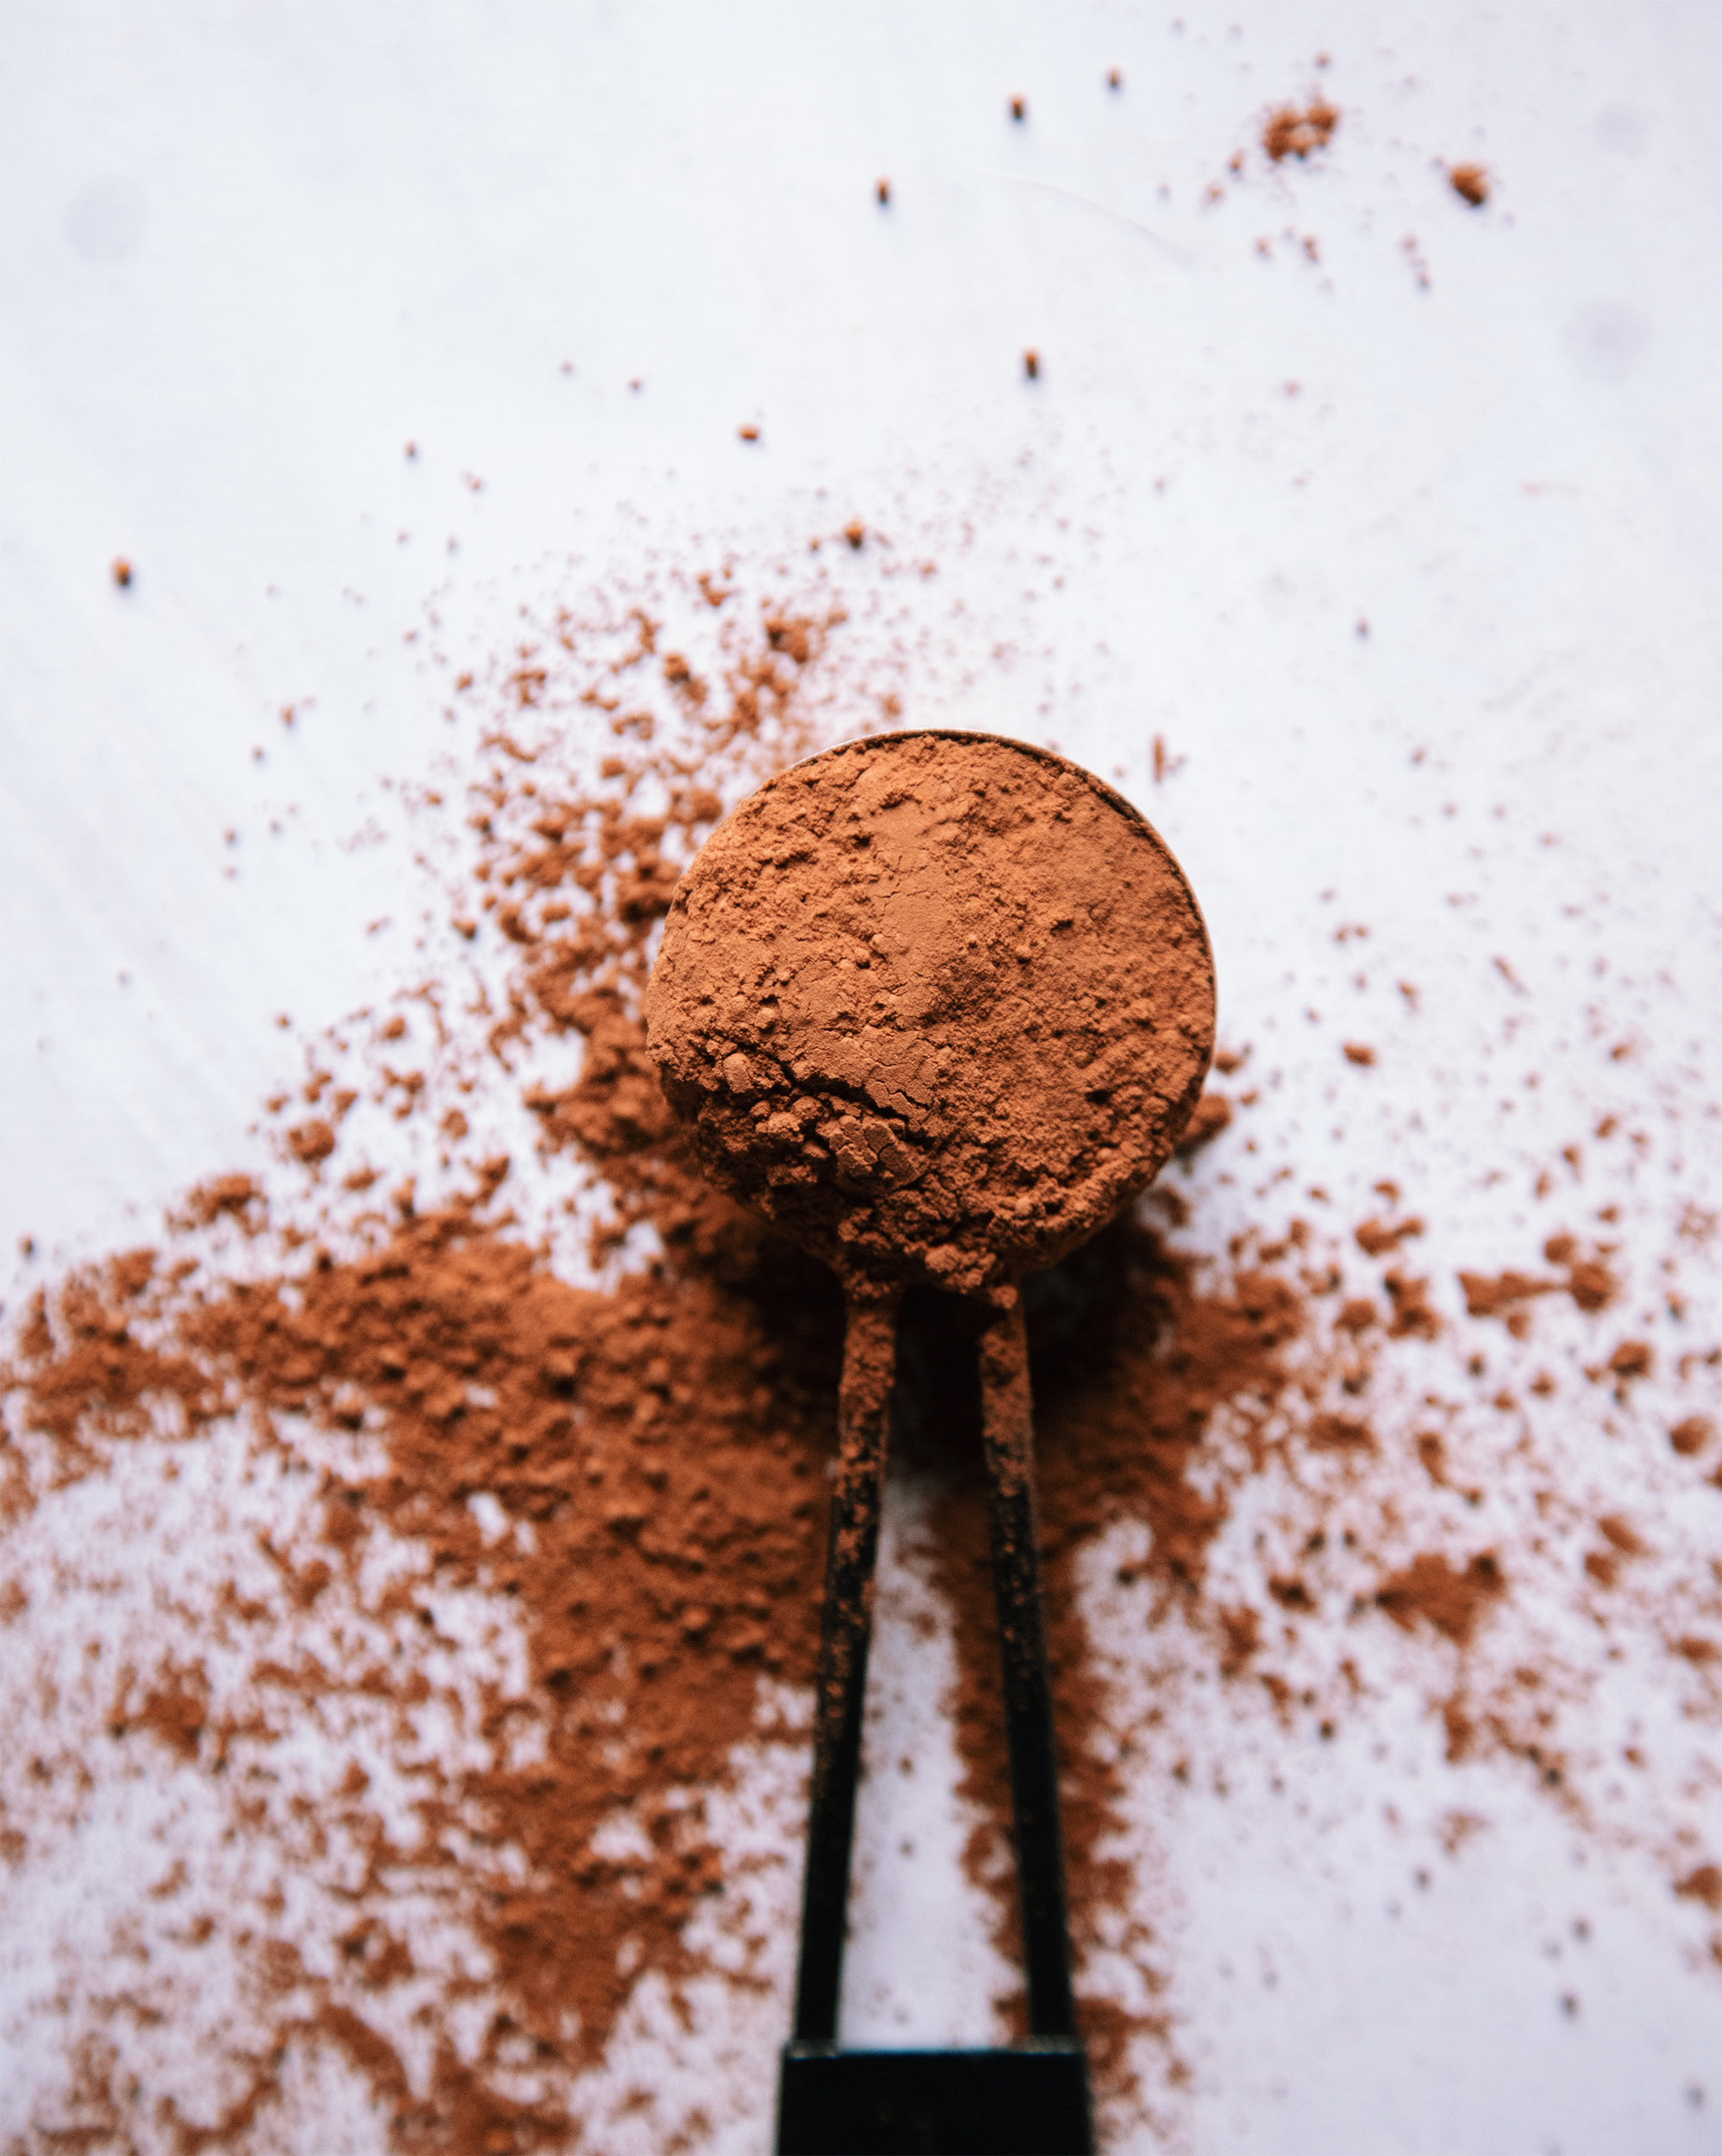 An overhead shot of a black measuring spoon filled with cacao powder on a white background. The cacao is spilled out all around the spoon.